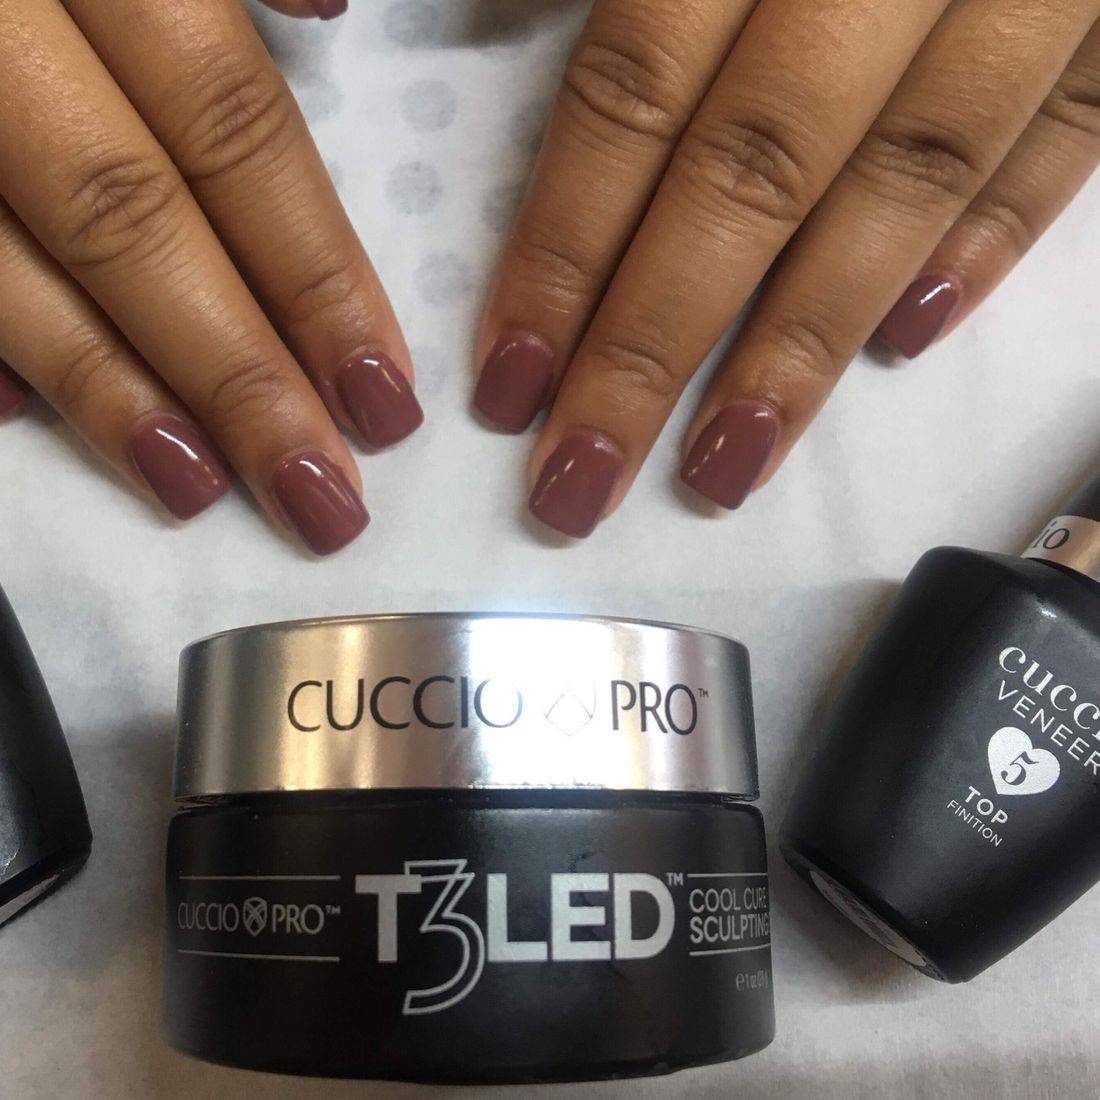 gel nails training north west, gel extensions training north west